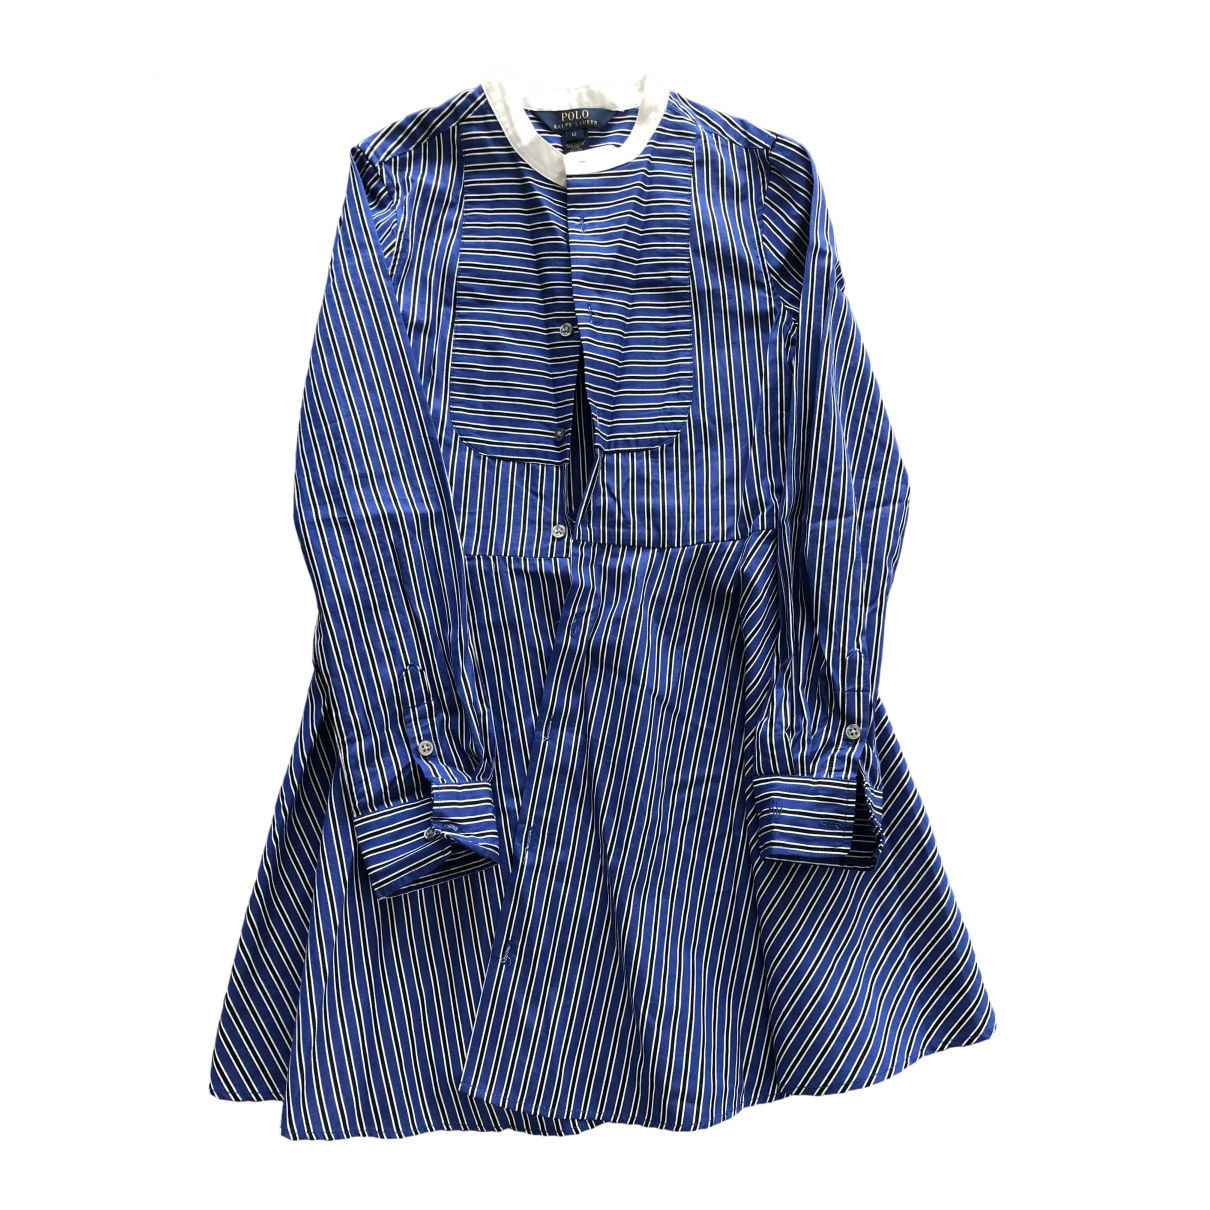 Polo Ralph Lauren \N Blue Cotton dress for Kids 12 years - XS FR